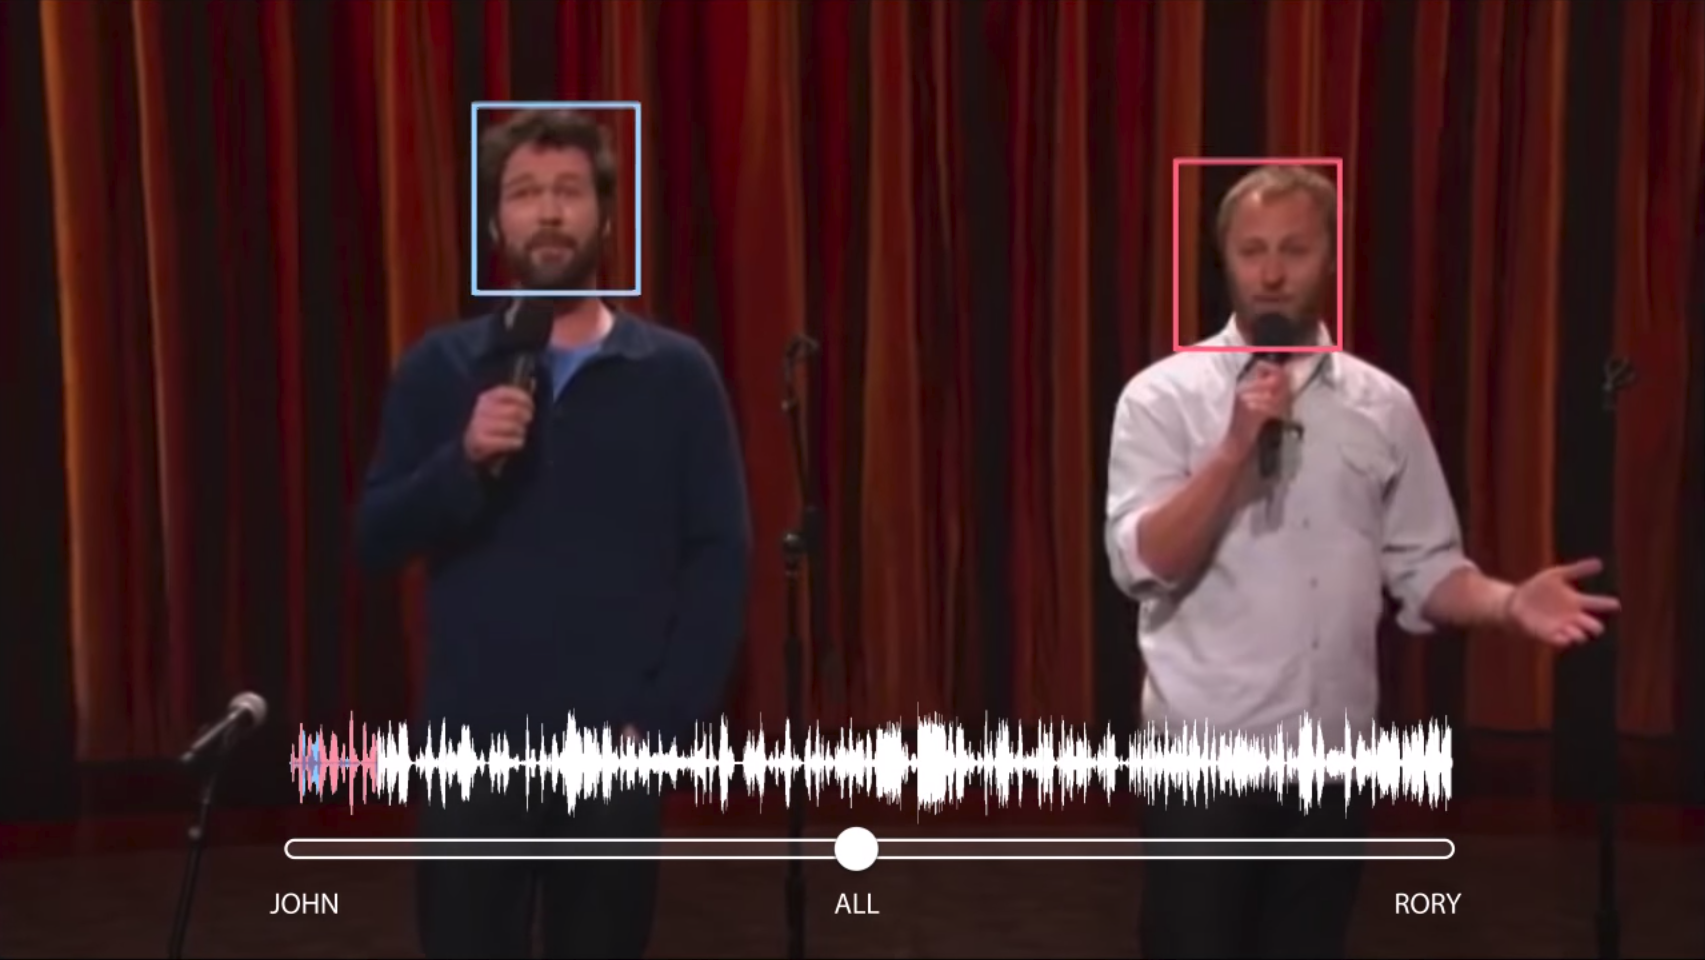 Cool, but scary: New Google AI tech can isolate a single